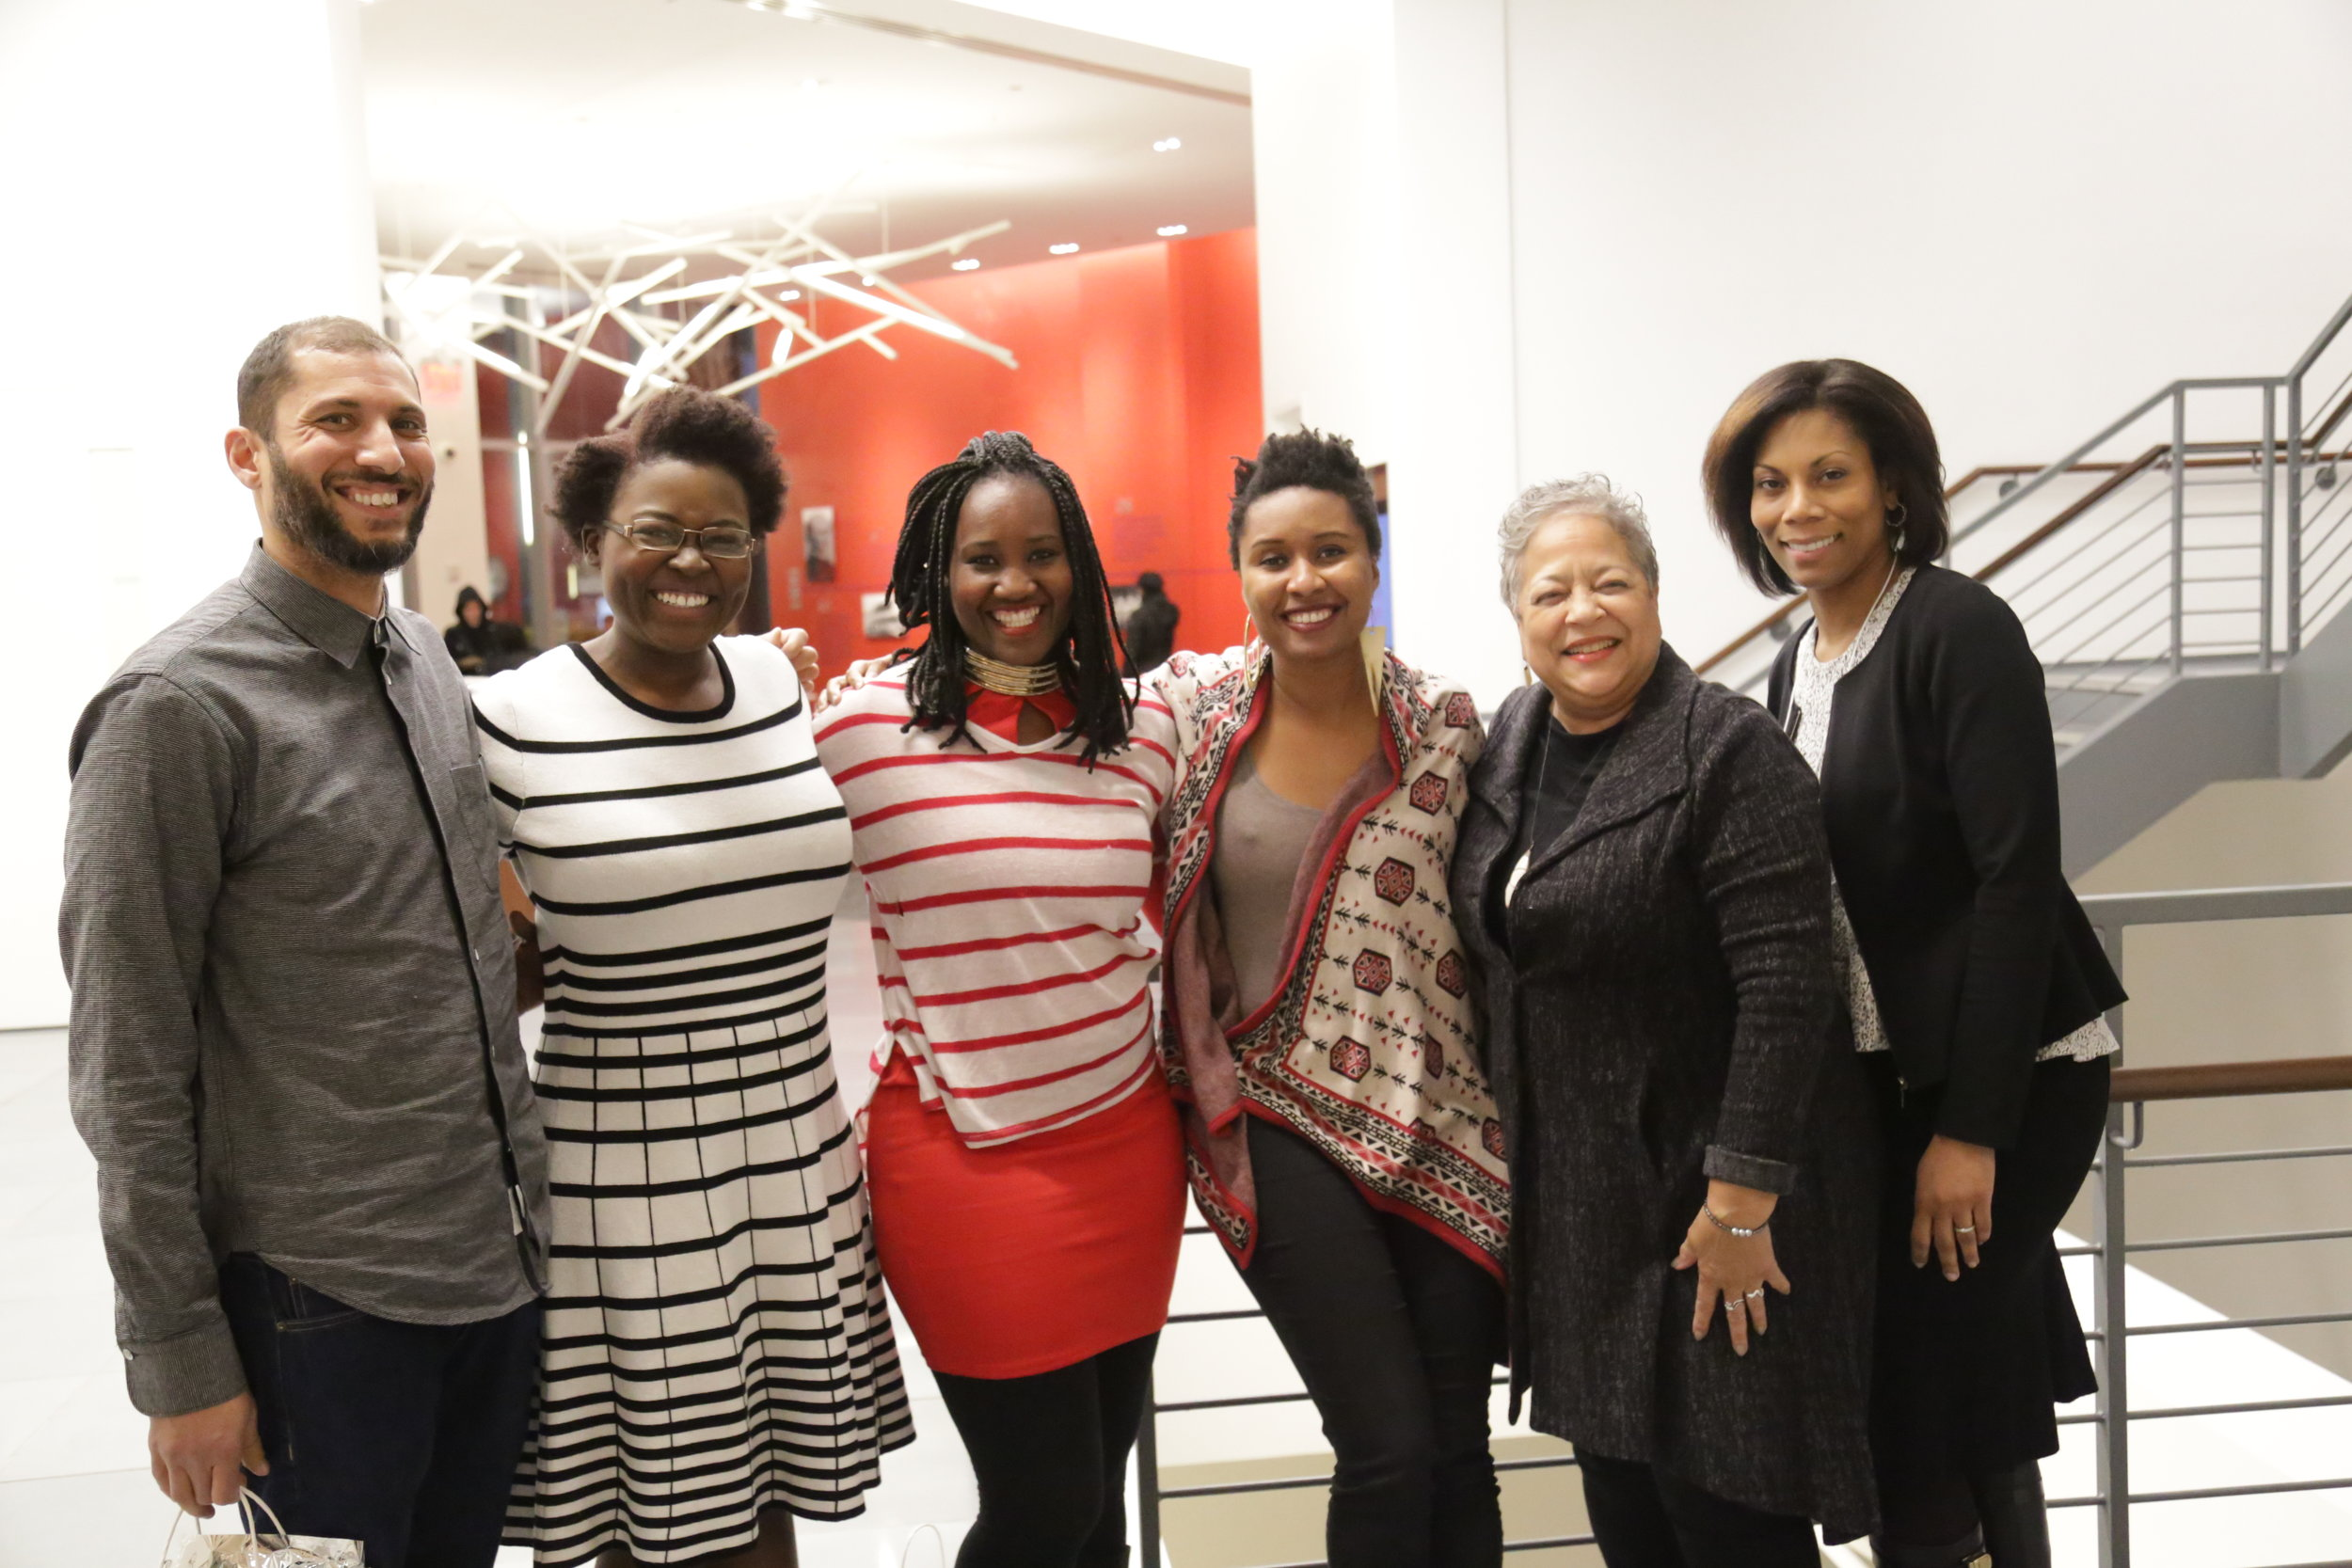 From left: Marc Thomas ( Black America Again),   Chengusoyane Kargbo ( Charcoal ), Lorry Francois ( Charcoal ), Francesca Andre ( Charcoal ), Michelle Materre, Terry Prettyman Bowles